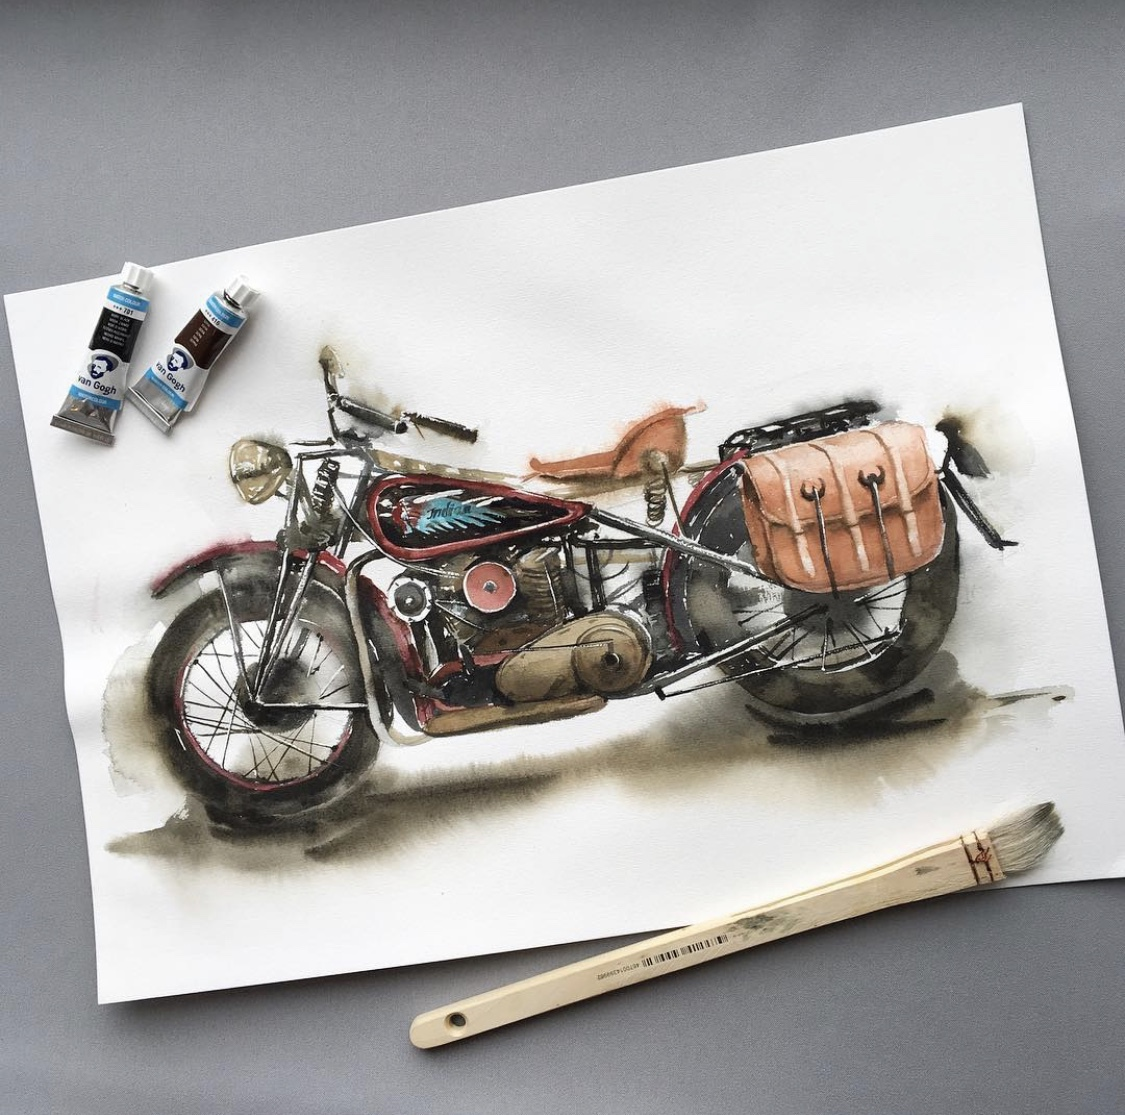 """Мотоцикл Royal Enfield"". Акварель"